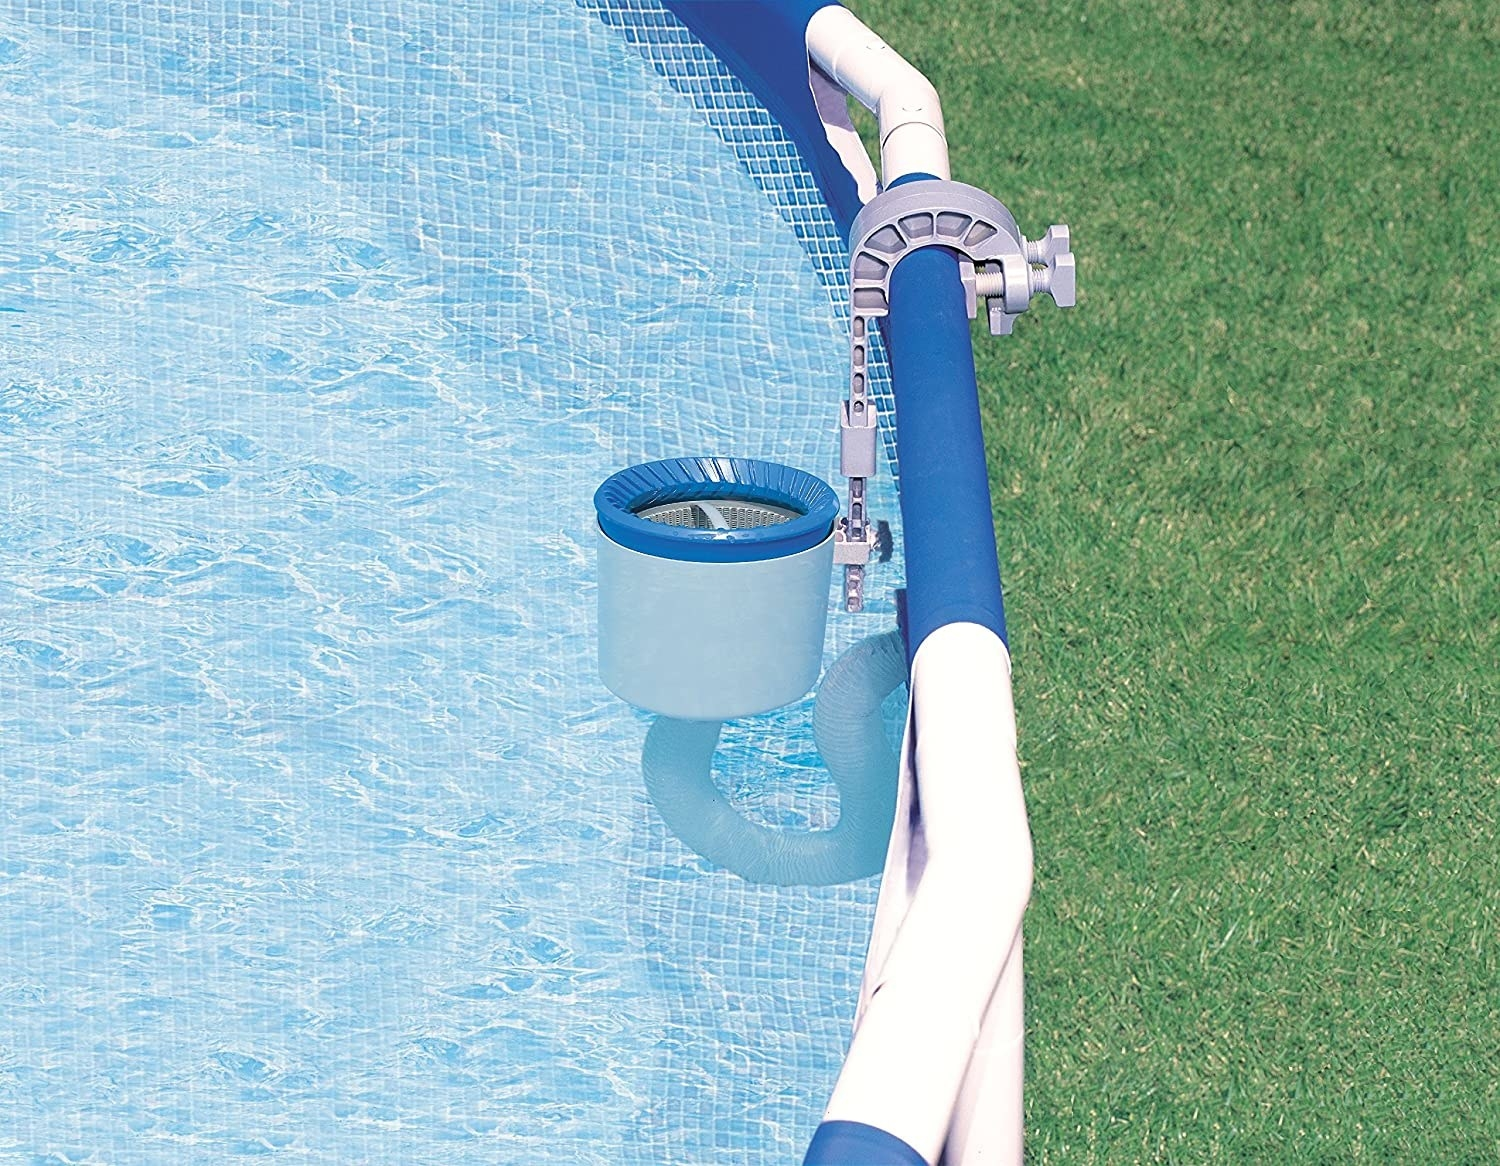 The skimmer mounted to the side of an above-ground pool